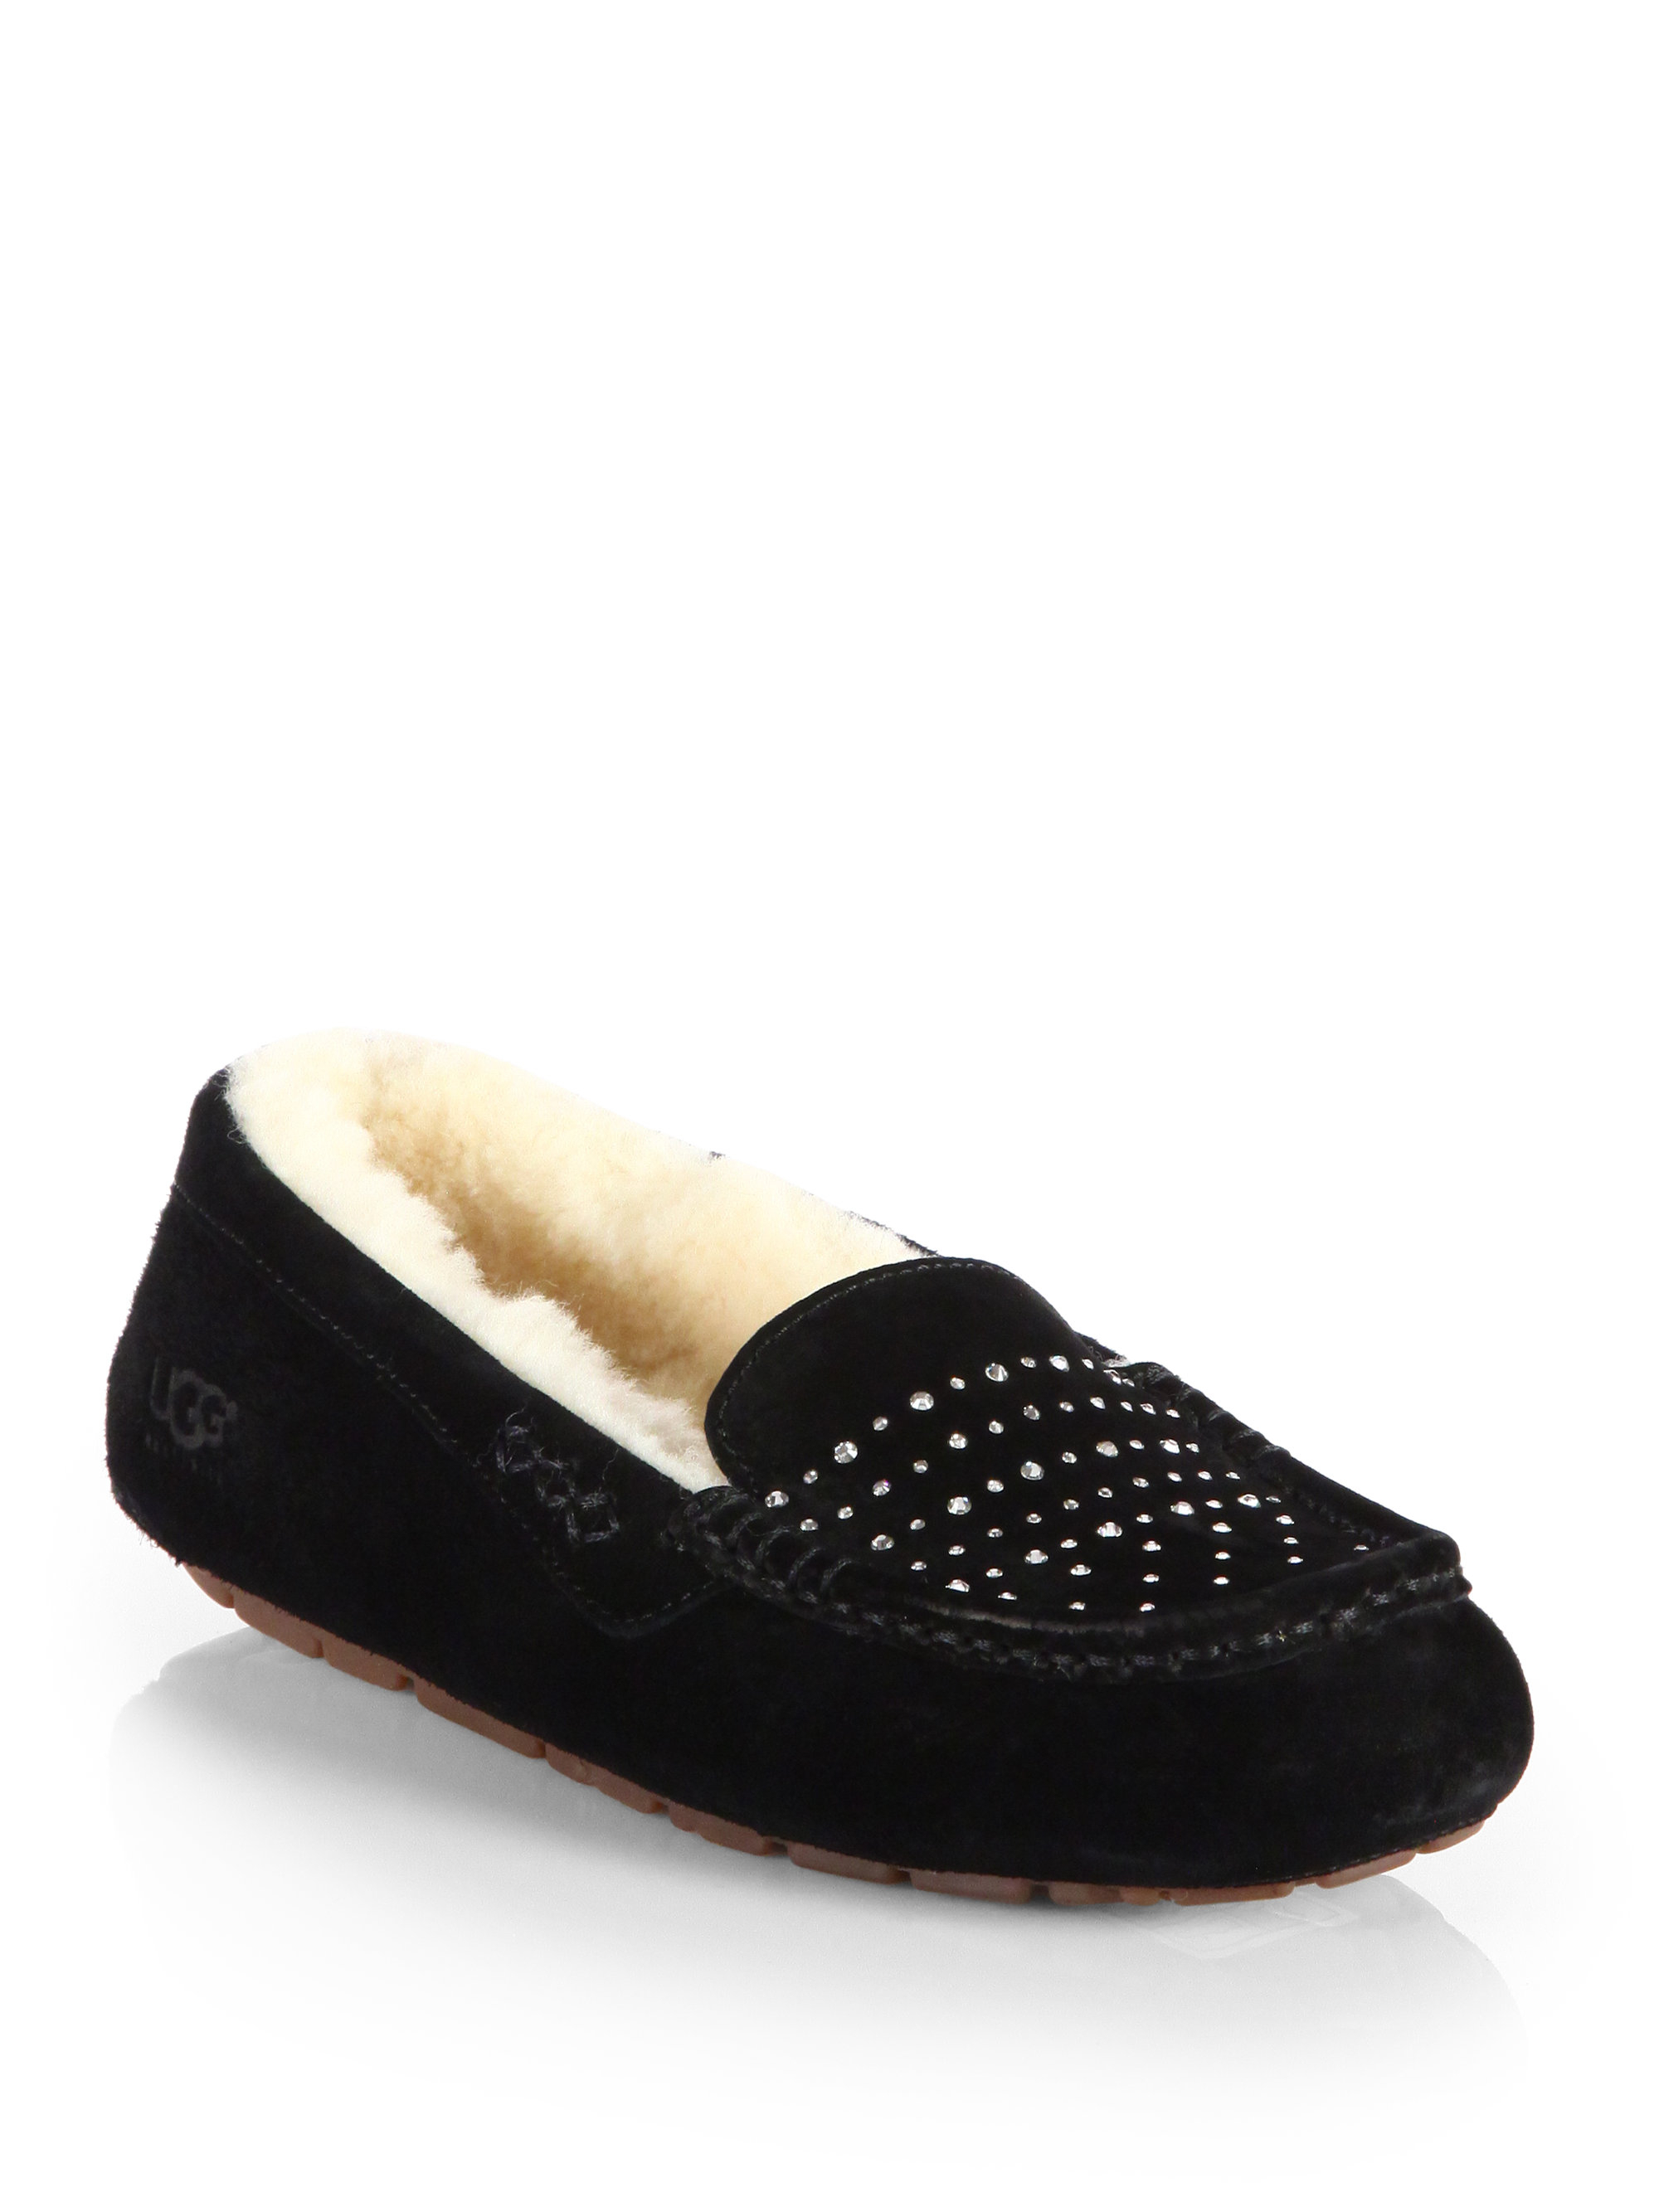 Lyst Ugg Ansley Suede Bling Slippers In Black